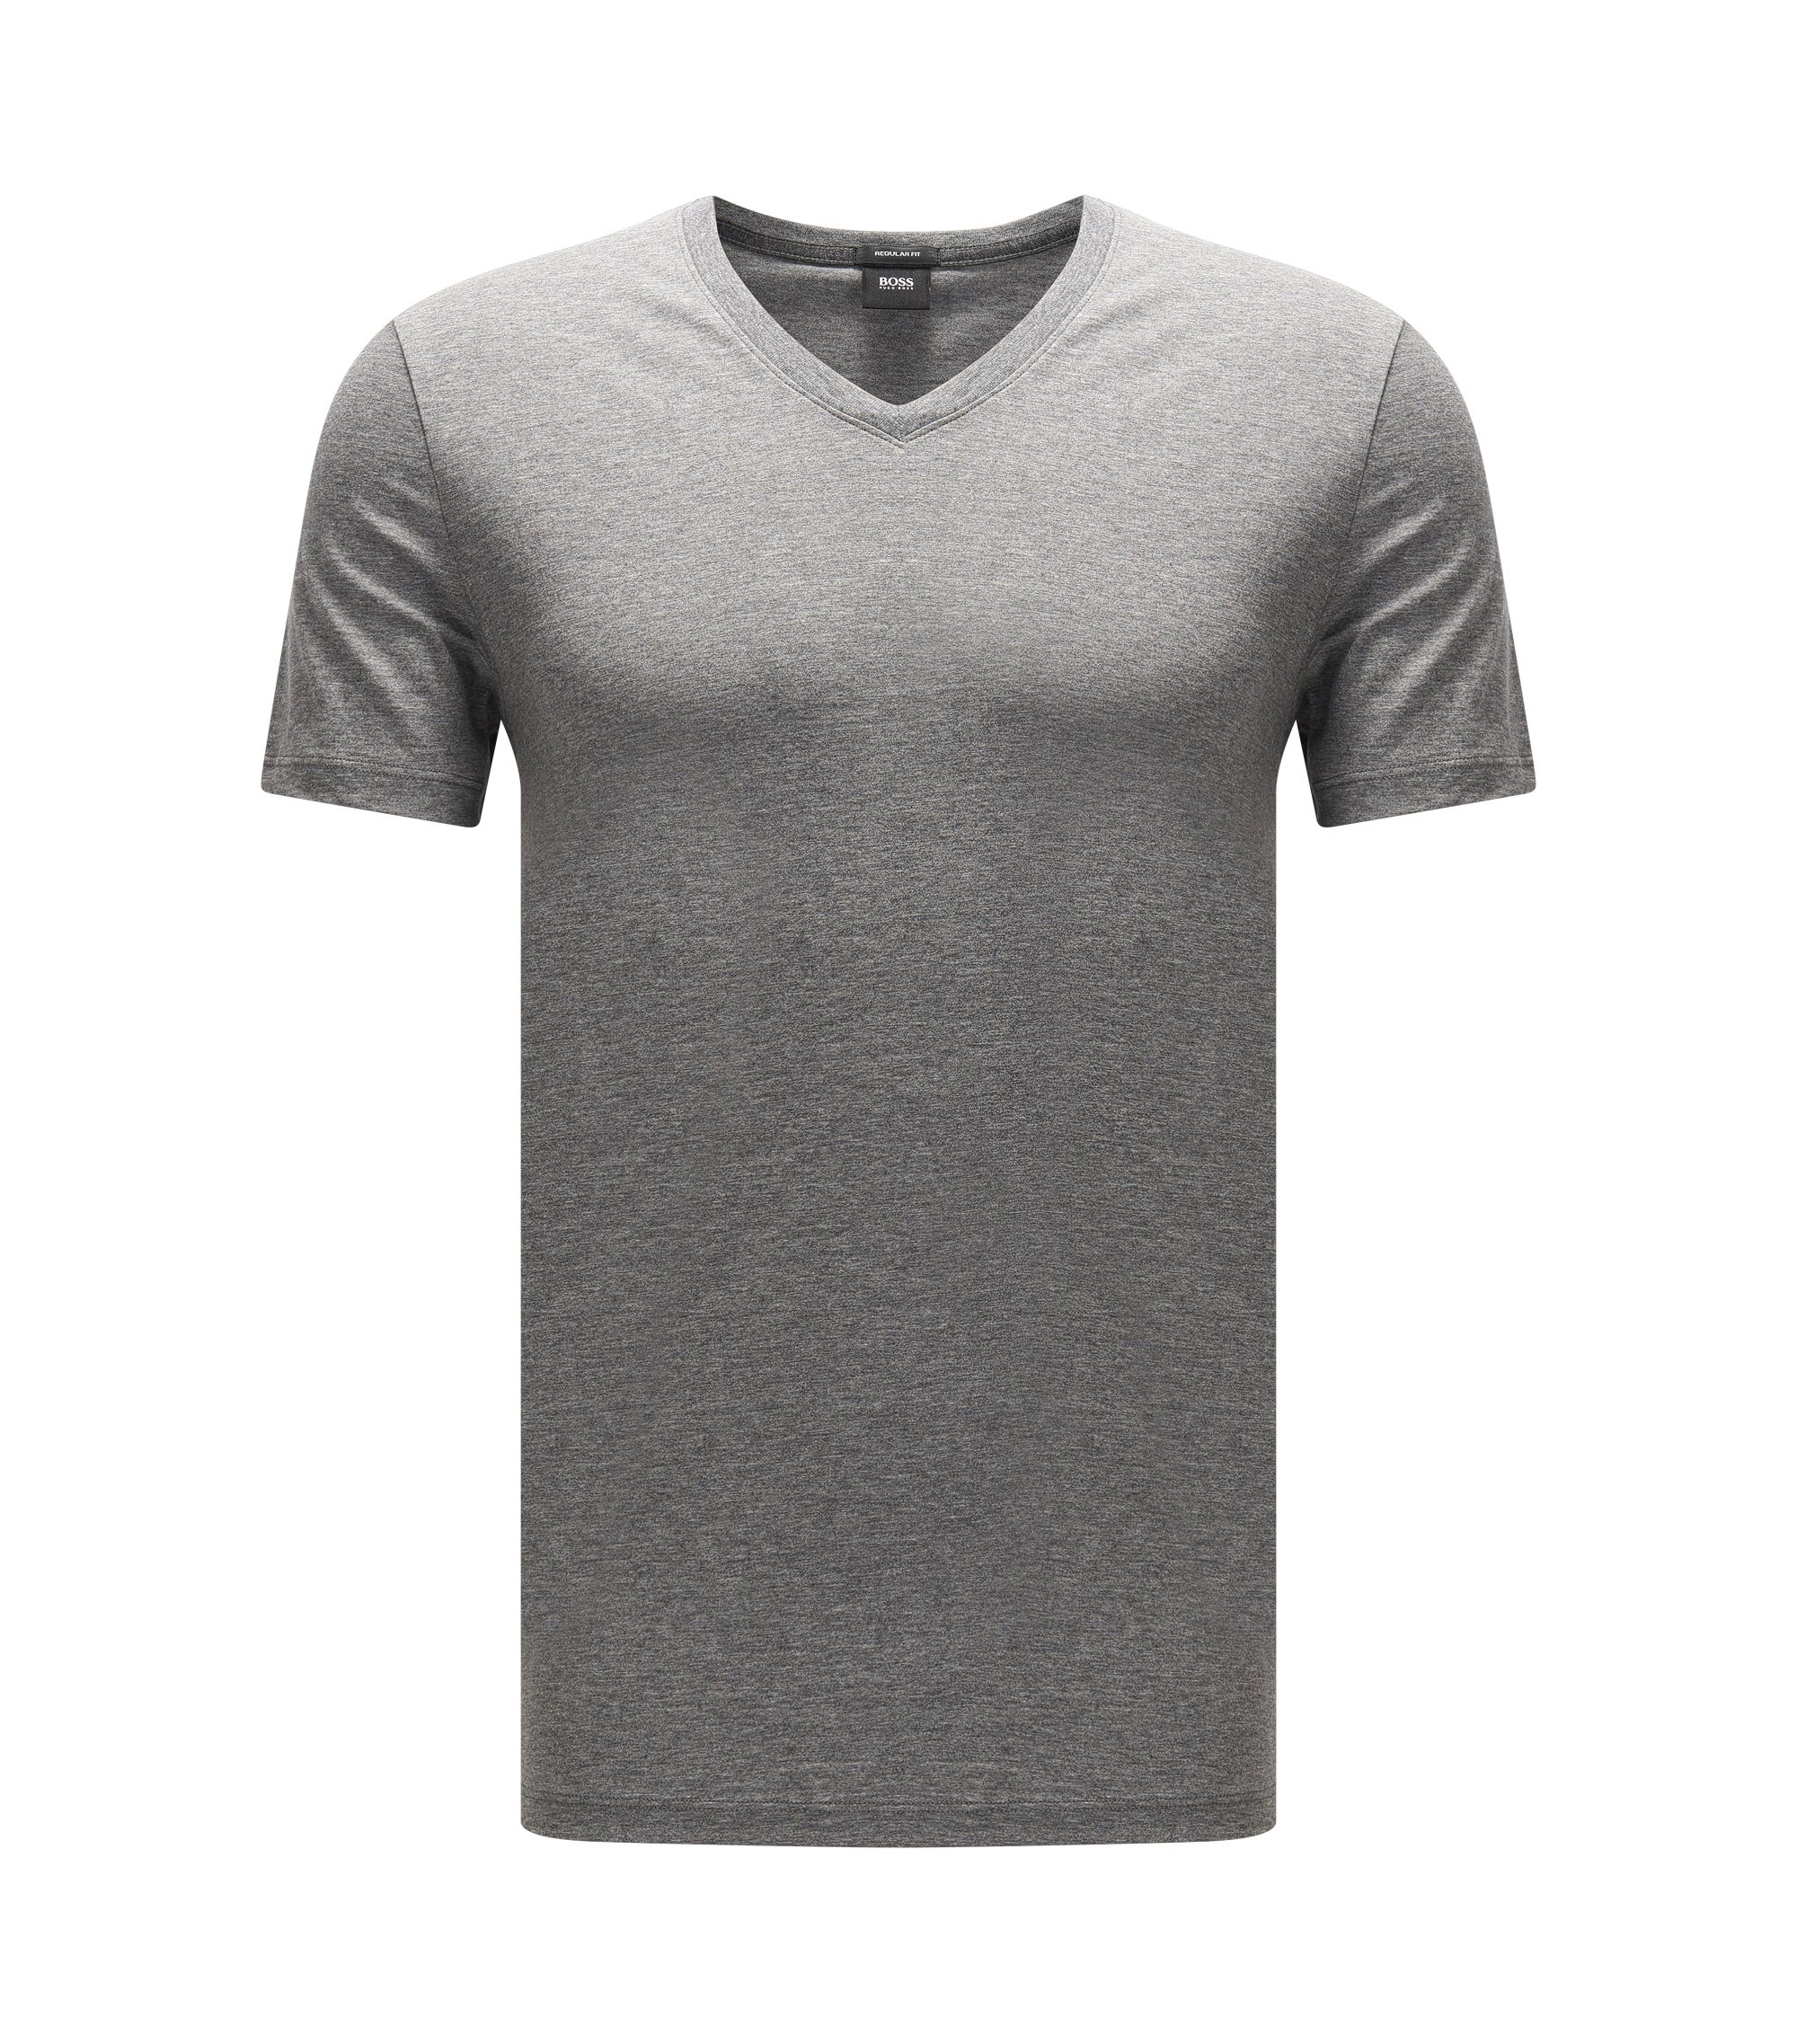 Regular-fit T-shirt in single jersey, Grey